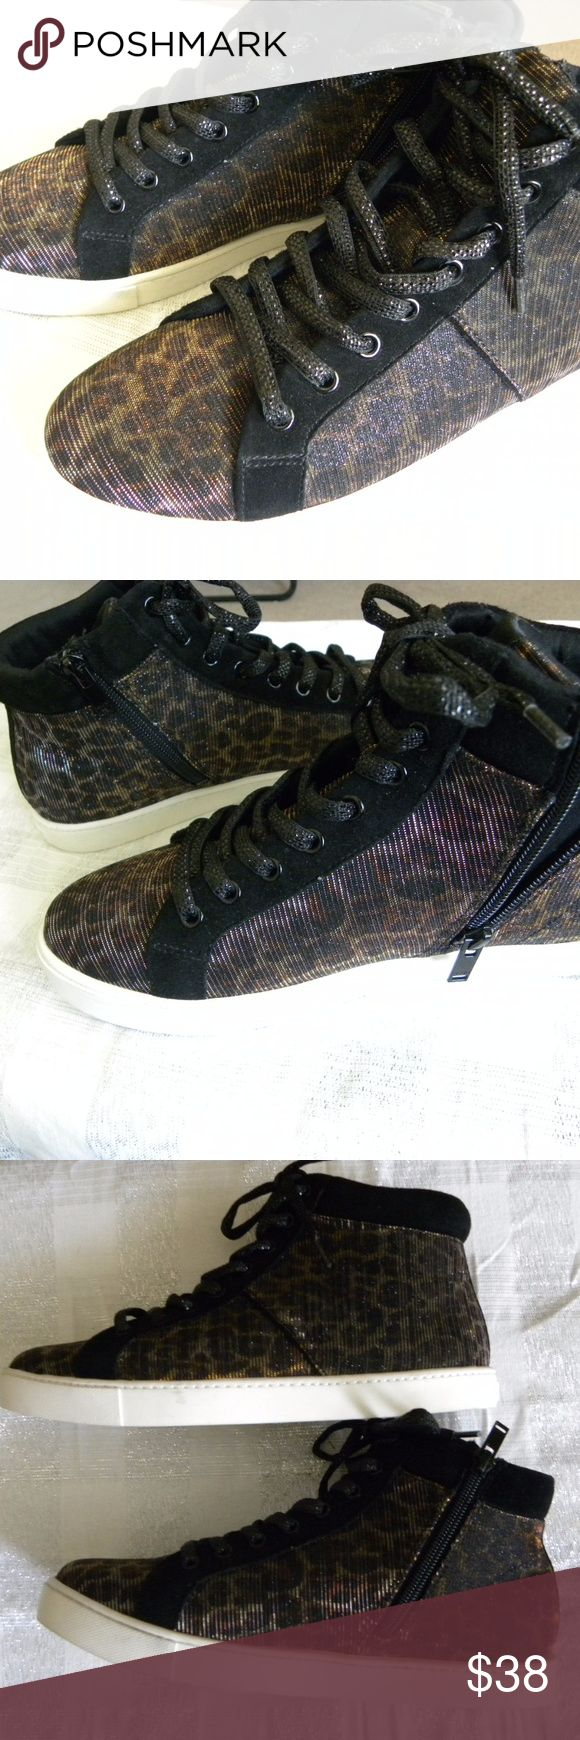 Aldo Women's Sneakers High Top Shiny Animal Print Aldo Women's Sneakers High Top Shiny Animal Print Size 8.5 M lace up and zip up Aldo Shoes Sneakers